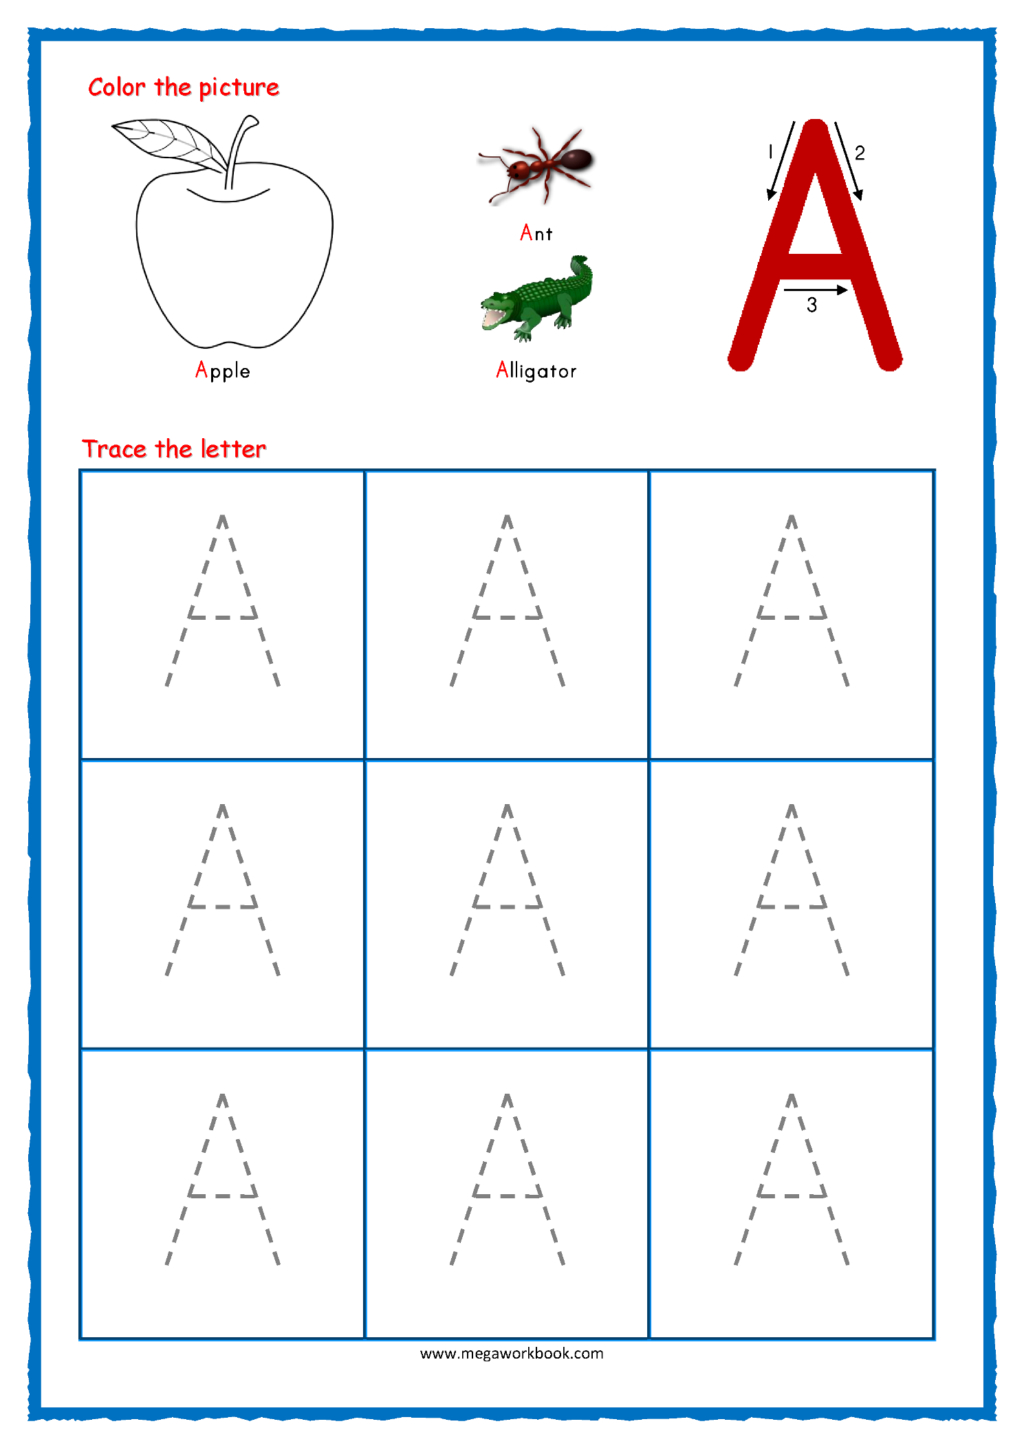 Worksheet ~ Capital Letter Tracing With Crayons 01 Alphabet throughout I Letter Tracing